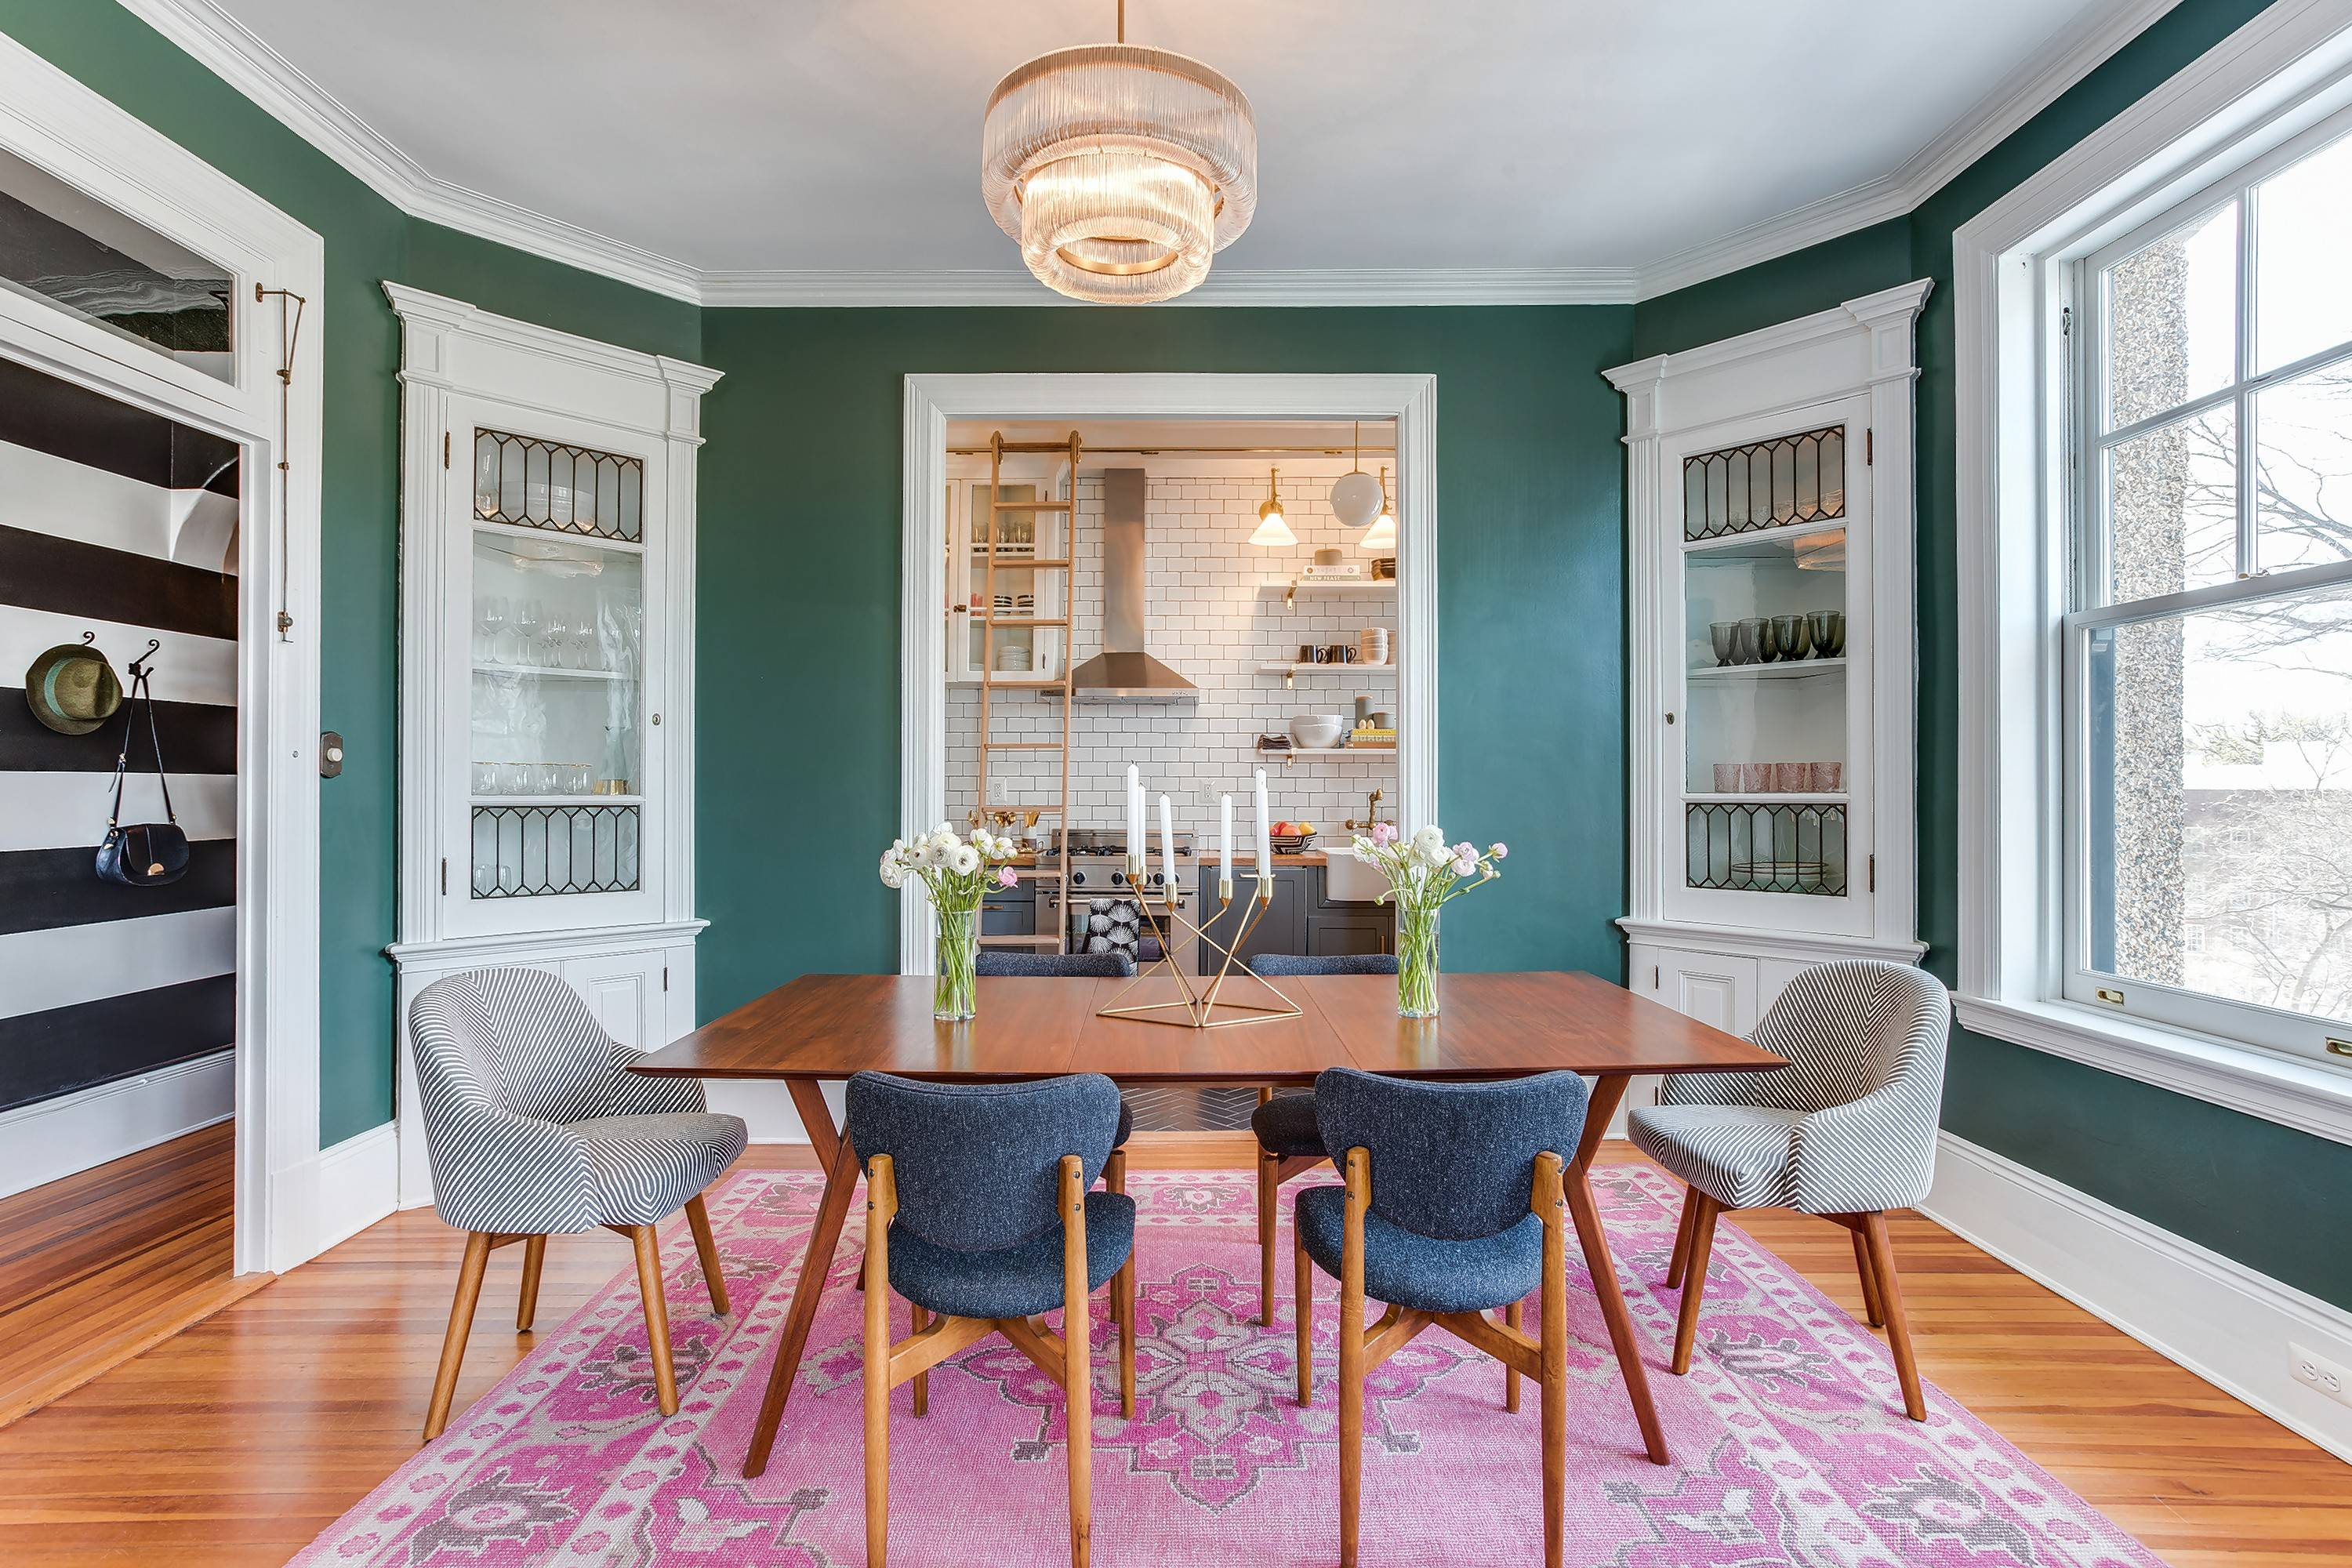 The dining room in Louisa Bargeron's apartment in Washington, D.C., retains two original corner cabinets with leaded glass. The walls were painted a warm green.